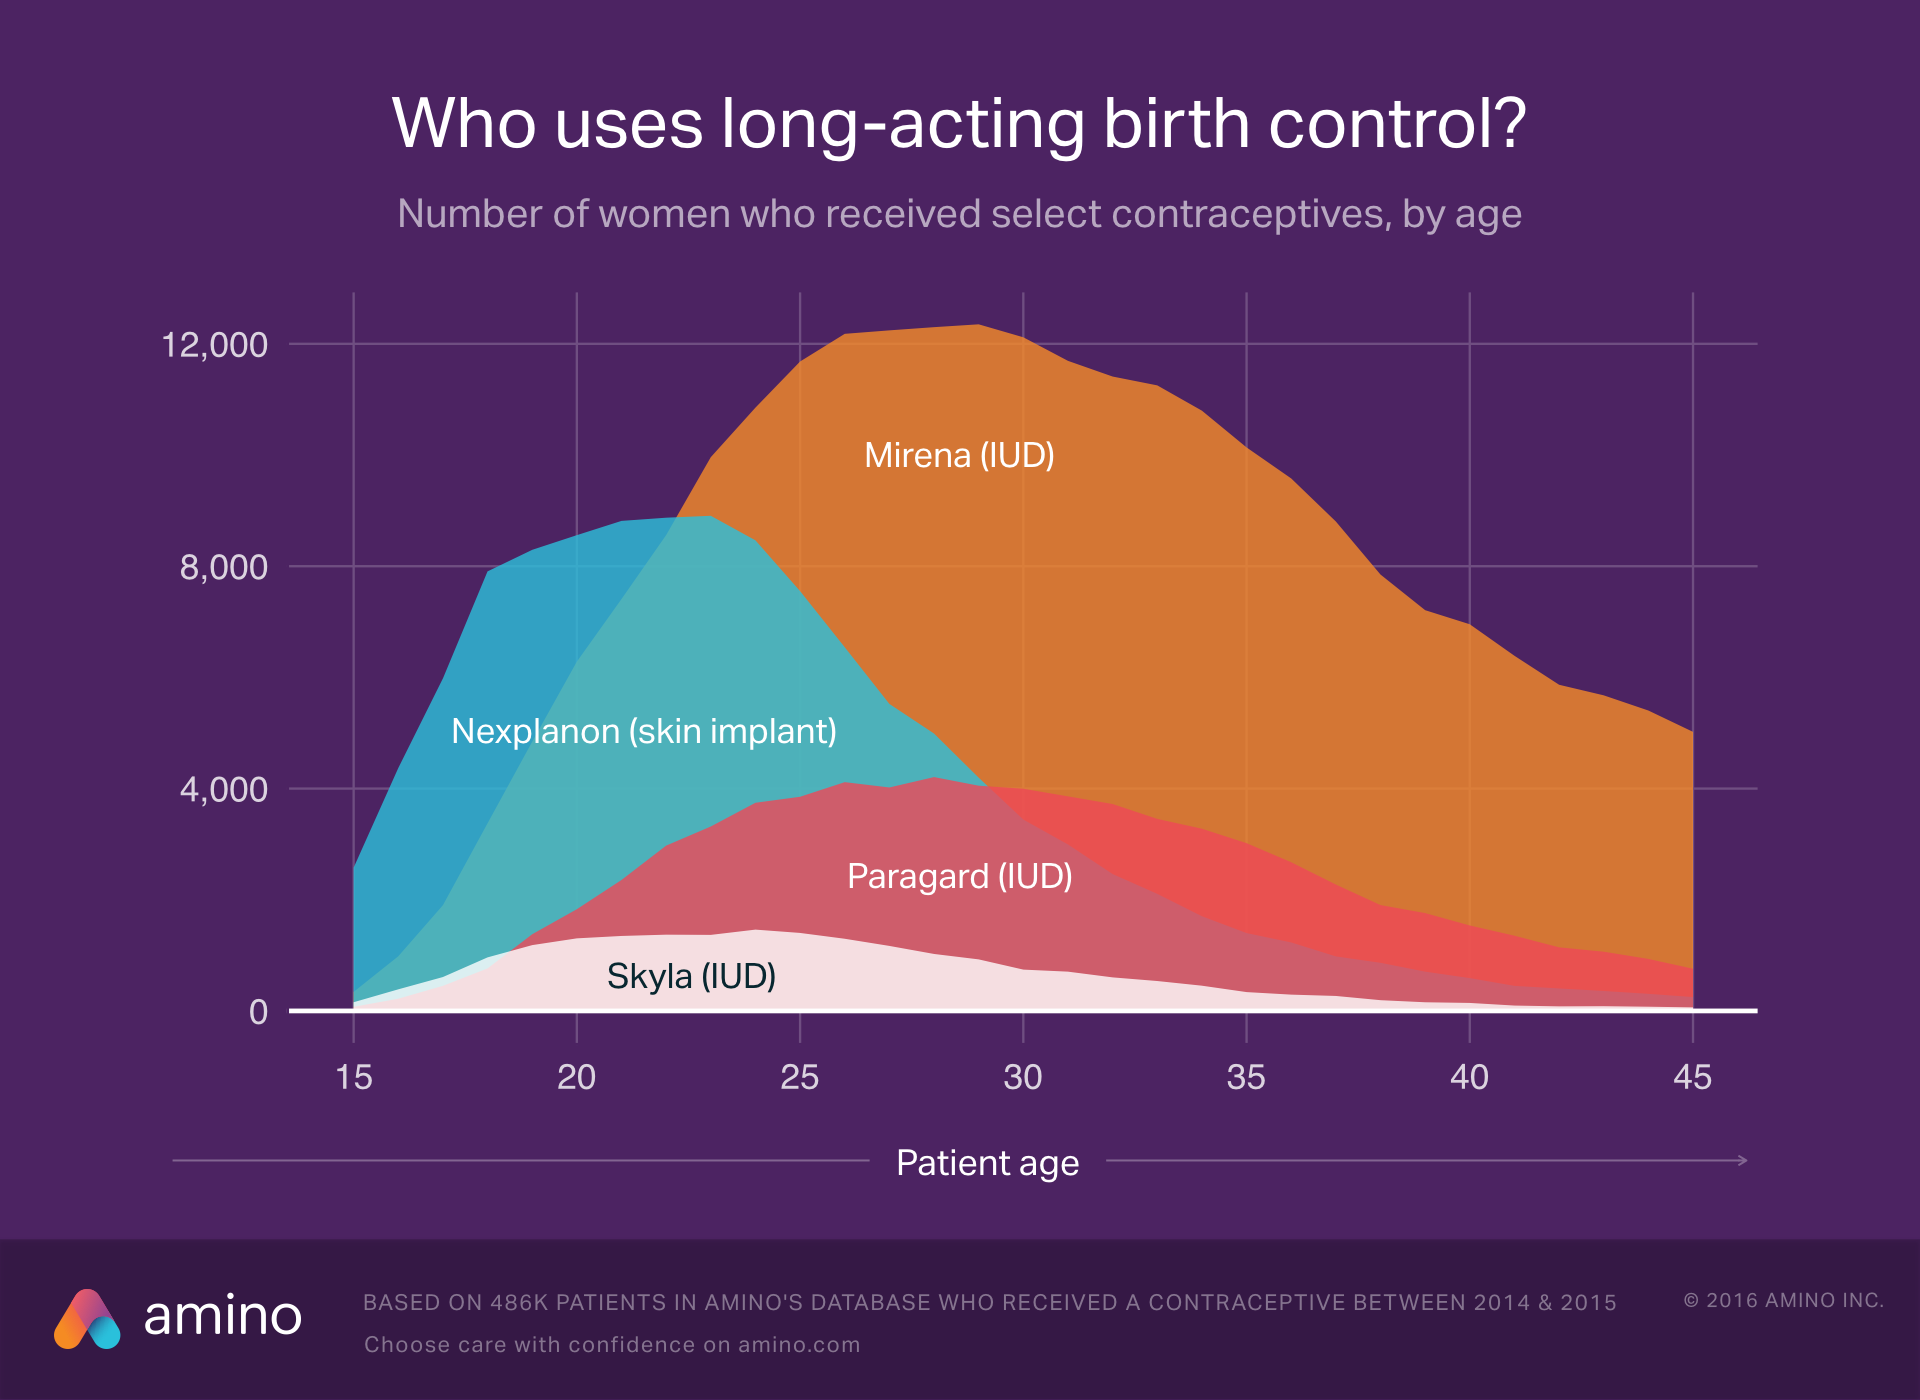 Who uses long-acting birth control?